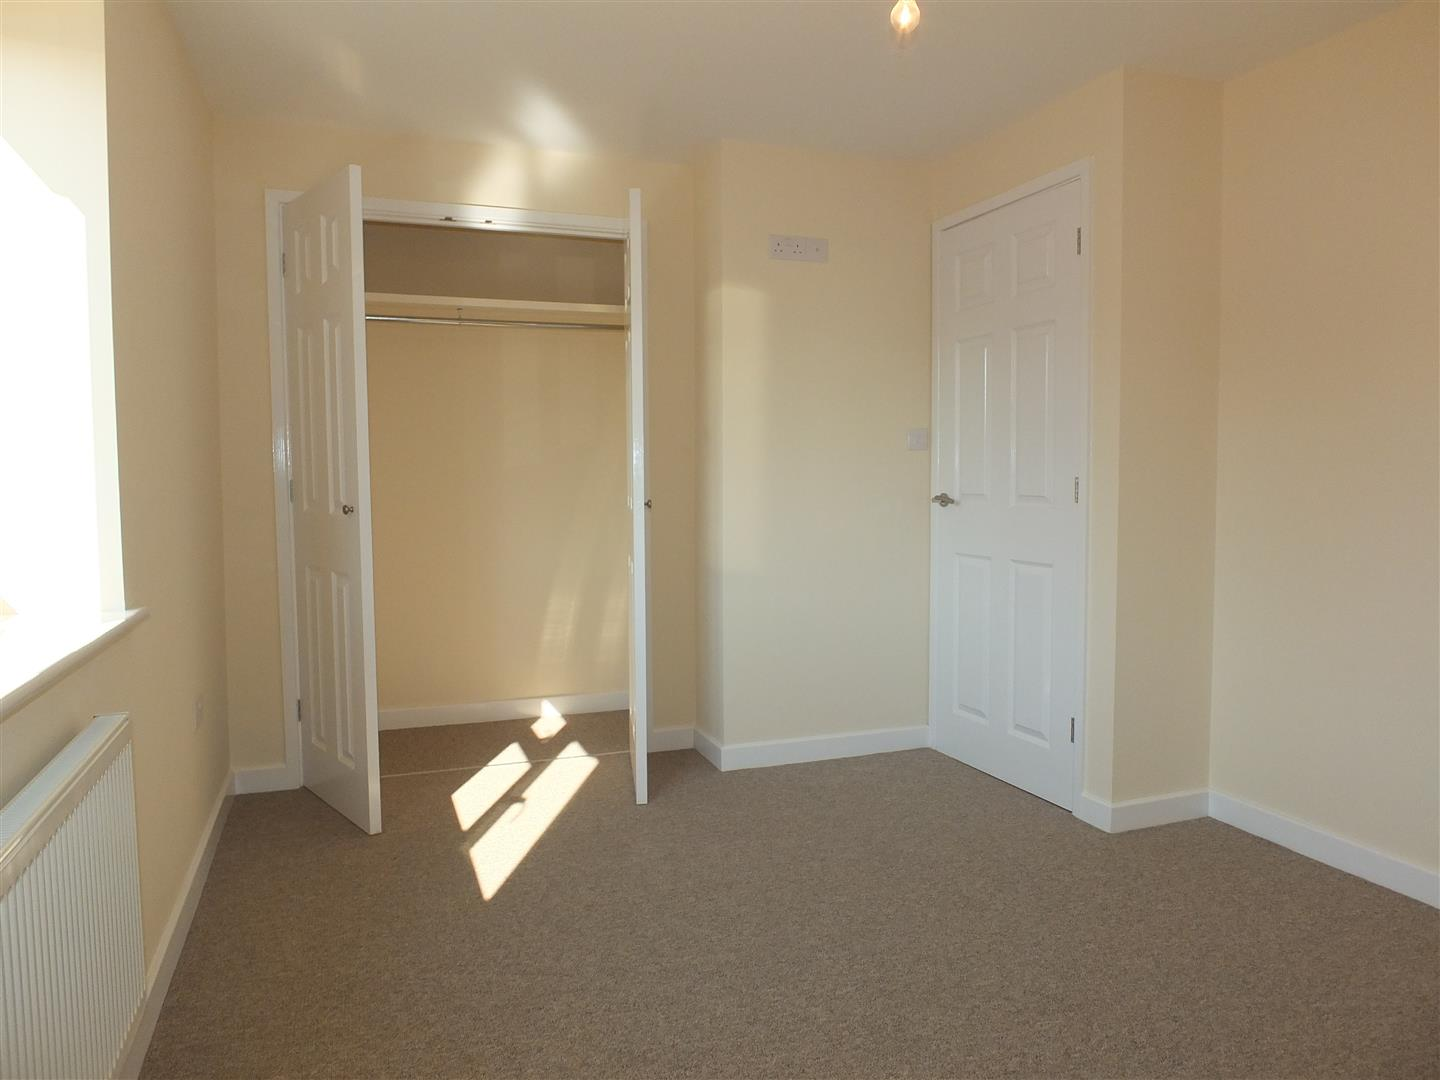 2 bed house to rent in Long Sutton, PE12 9LE  - Property Image 8